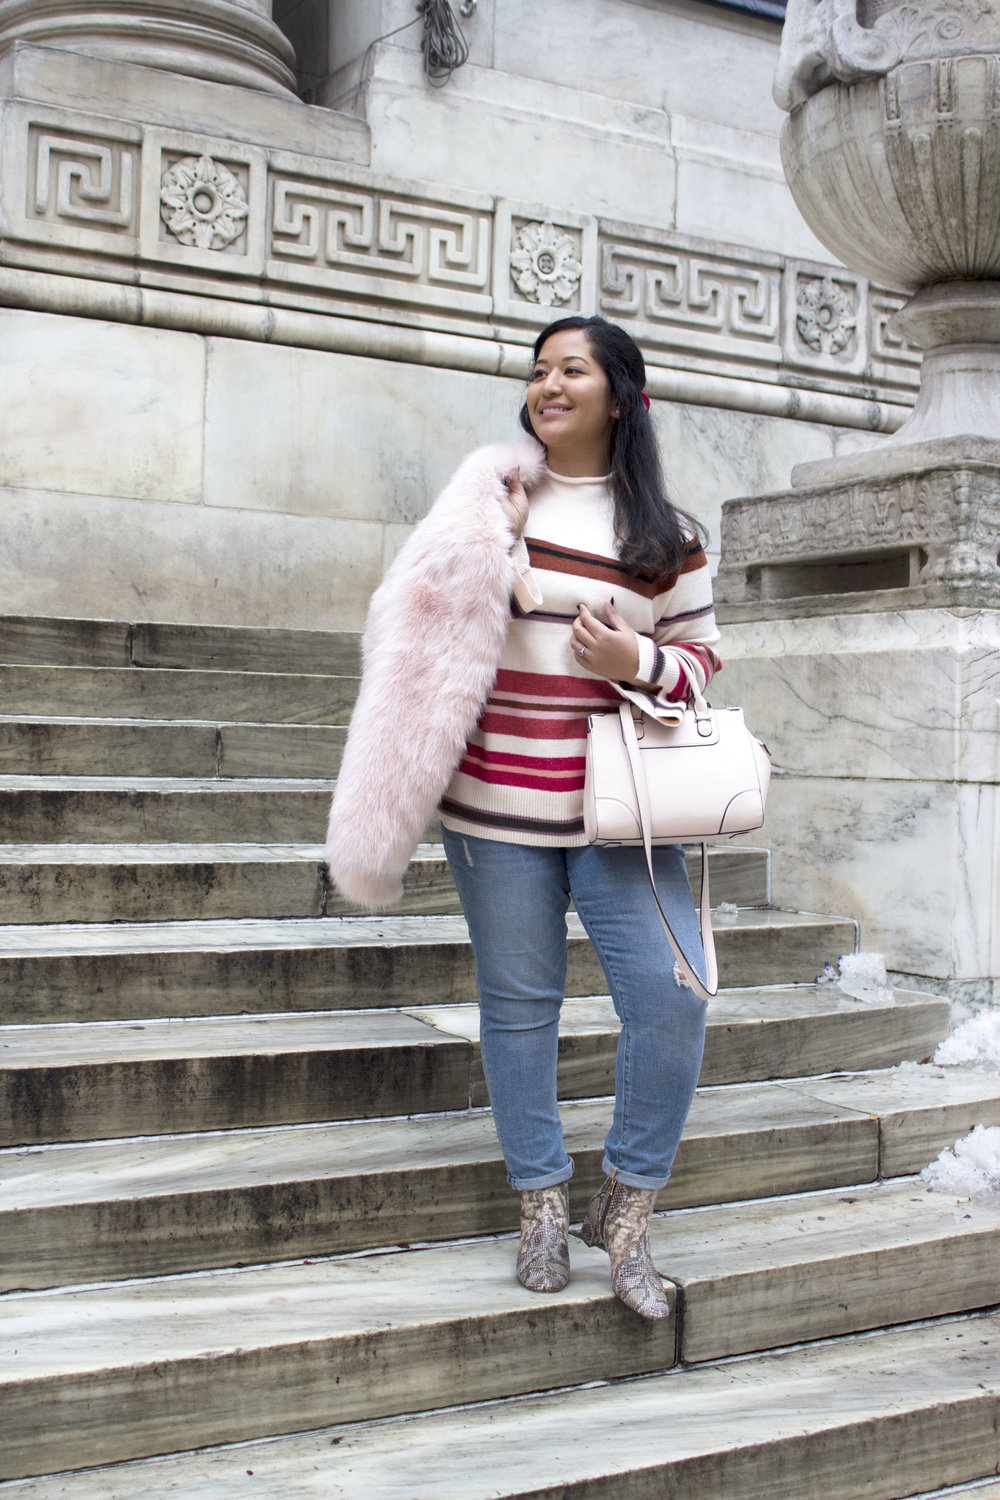 Krity S x Loft Stripe Sweater x Pink Faux Fur x Winter Outfit3.jpg